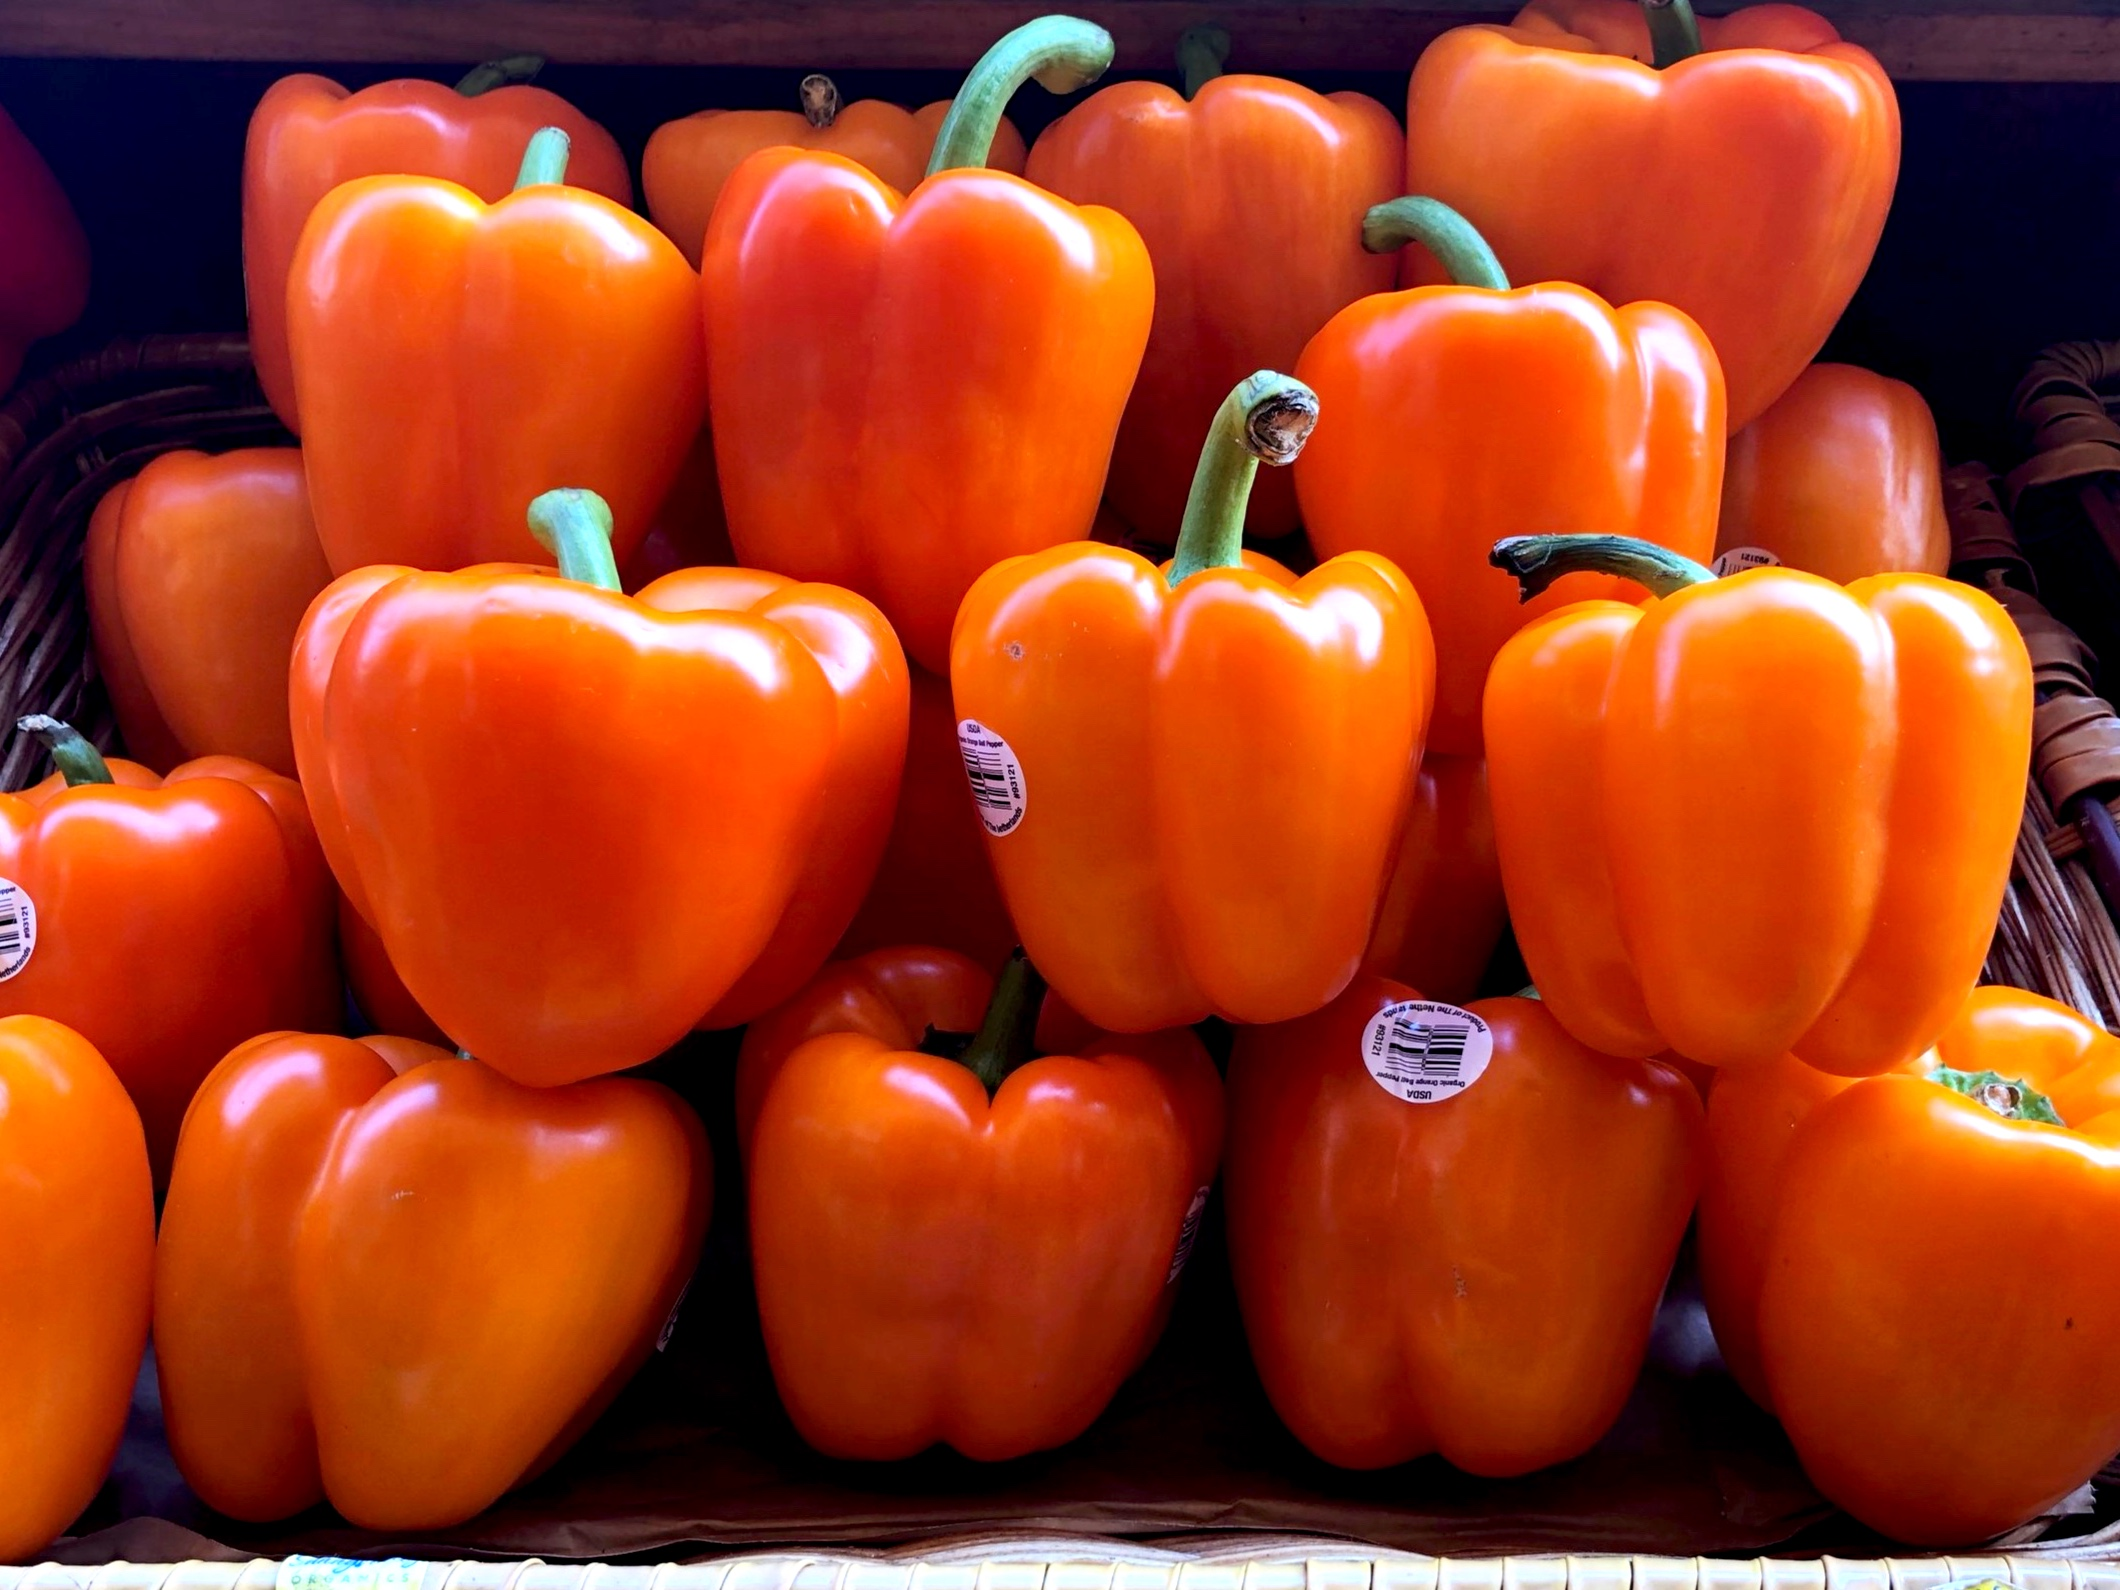 Organic orange peppers at Russo's.